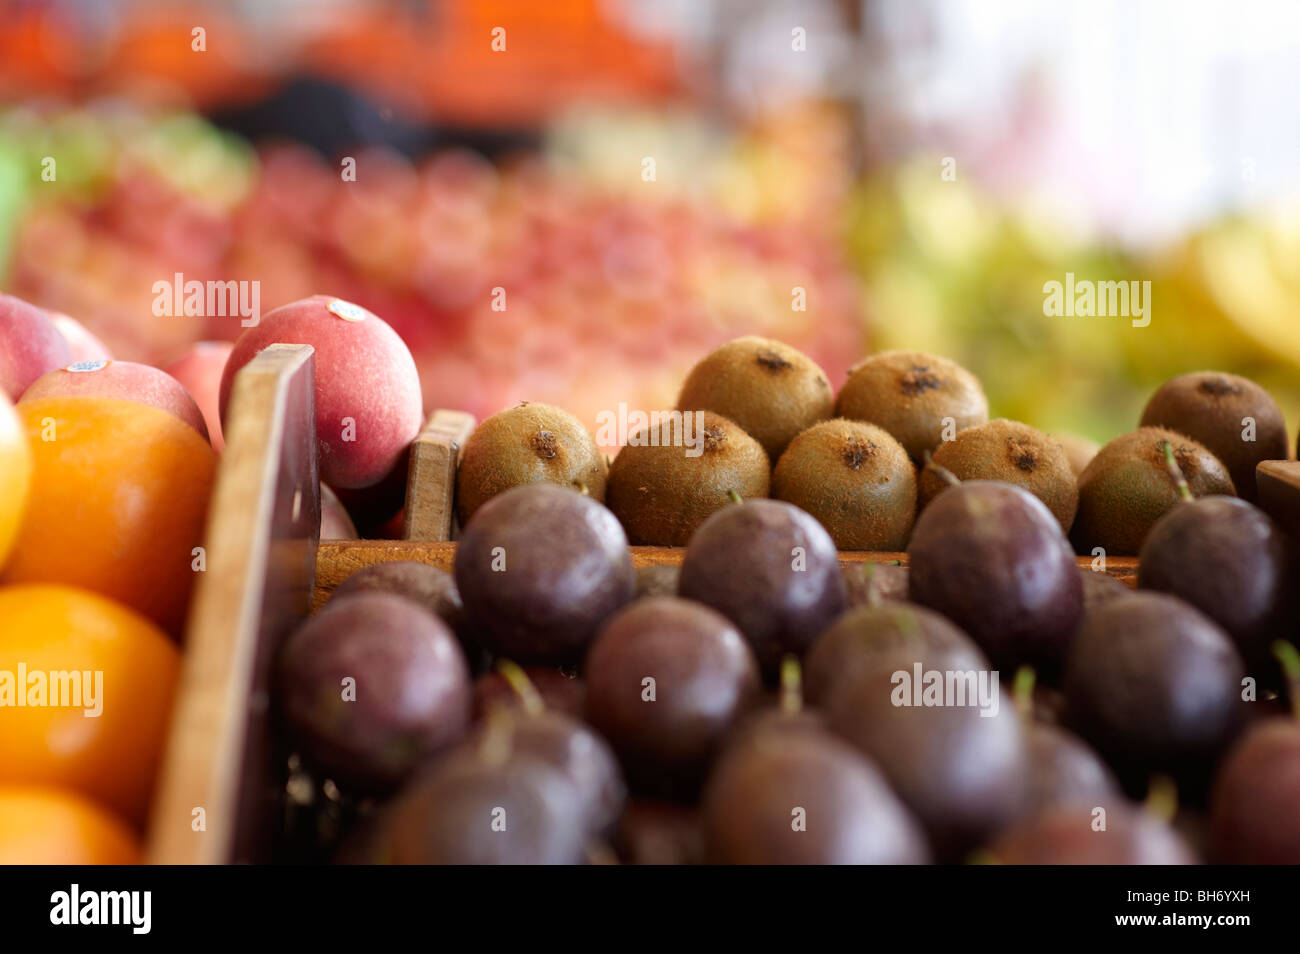 Fresh fruit for sale at greengrocer's shop Stock Photo